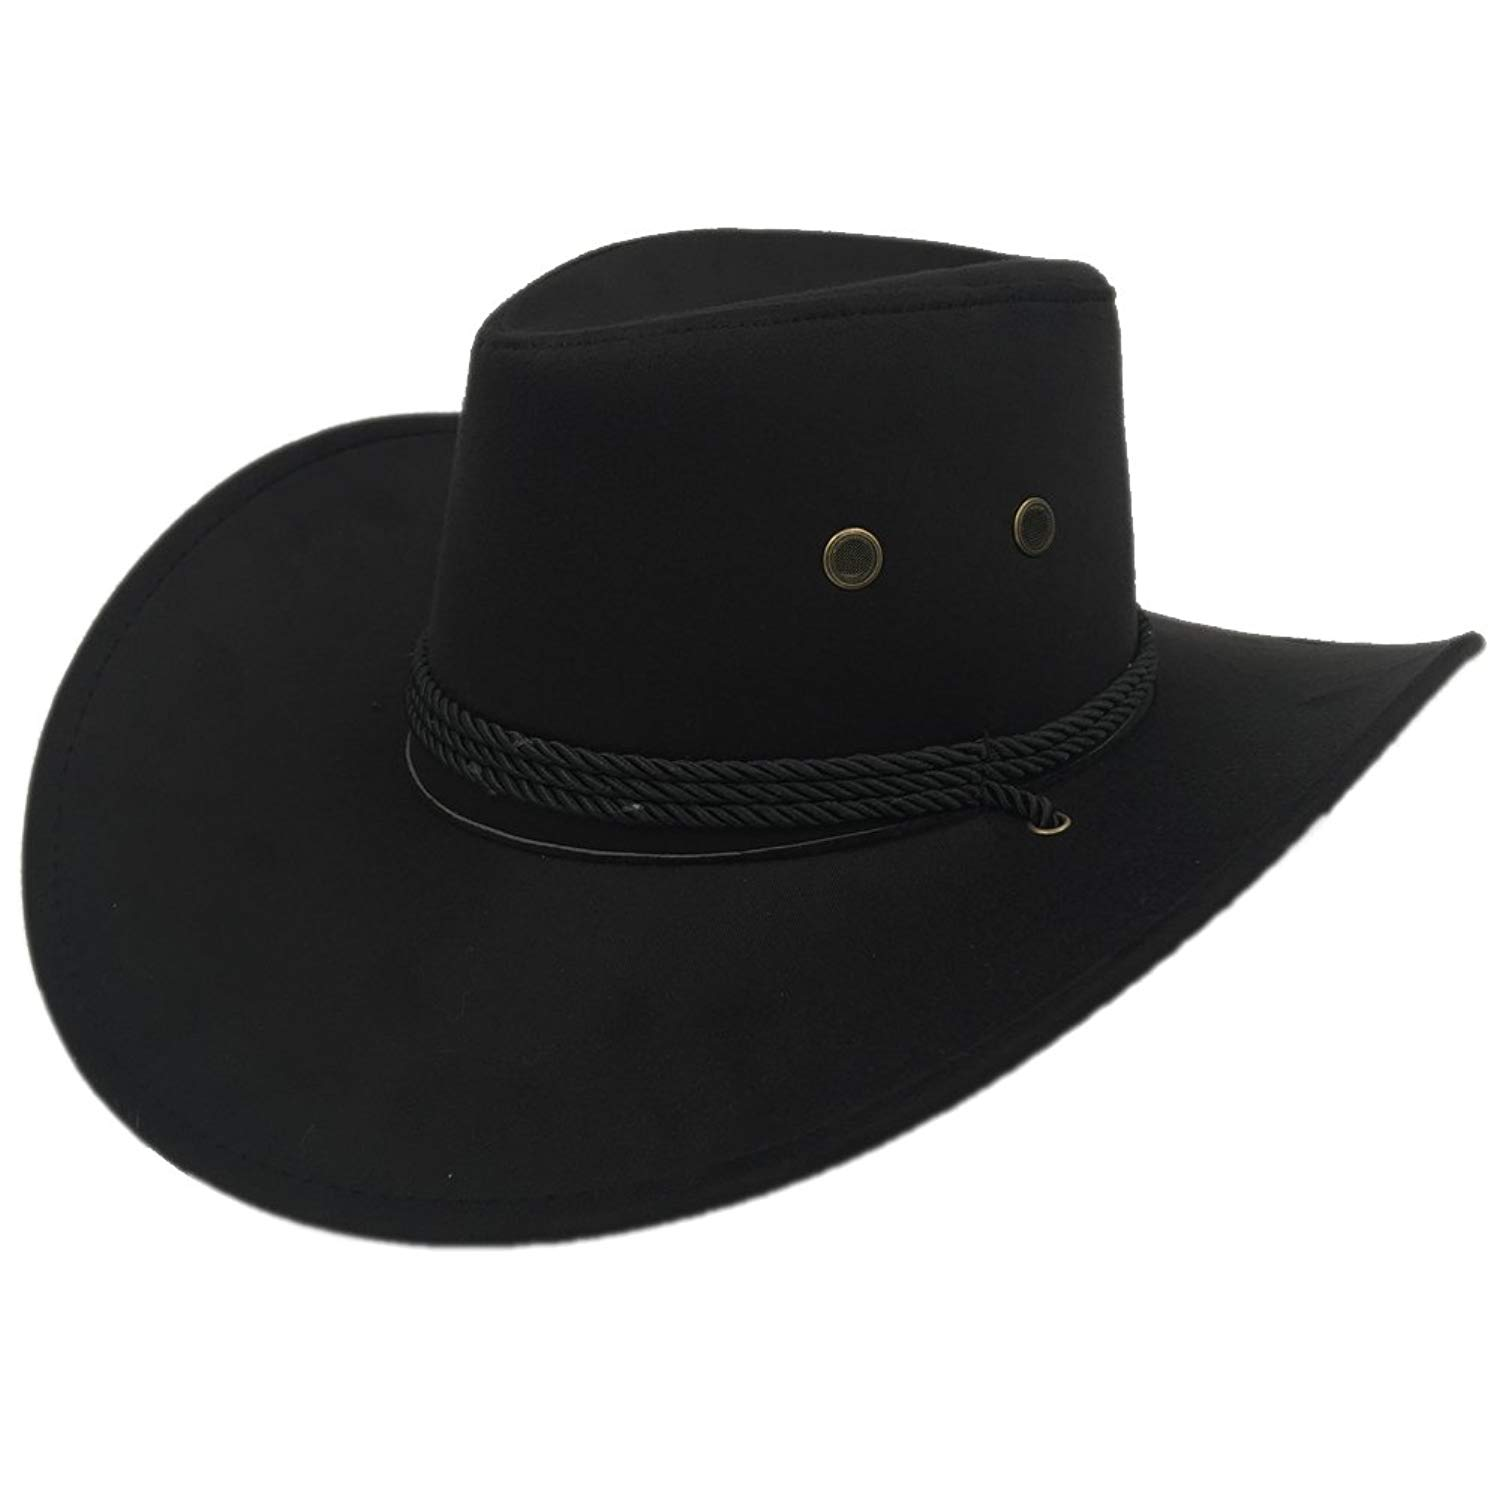 0eaa4abe4 Get Quotations · Sandy Ting Men's Outback Faux Felt Wide Brim Western  Cowboy Hat